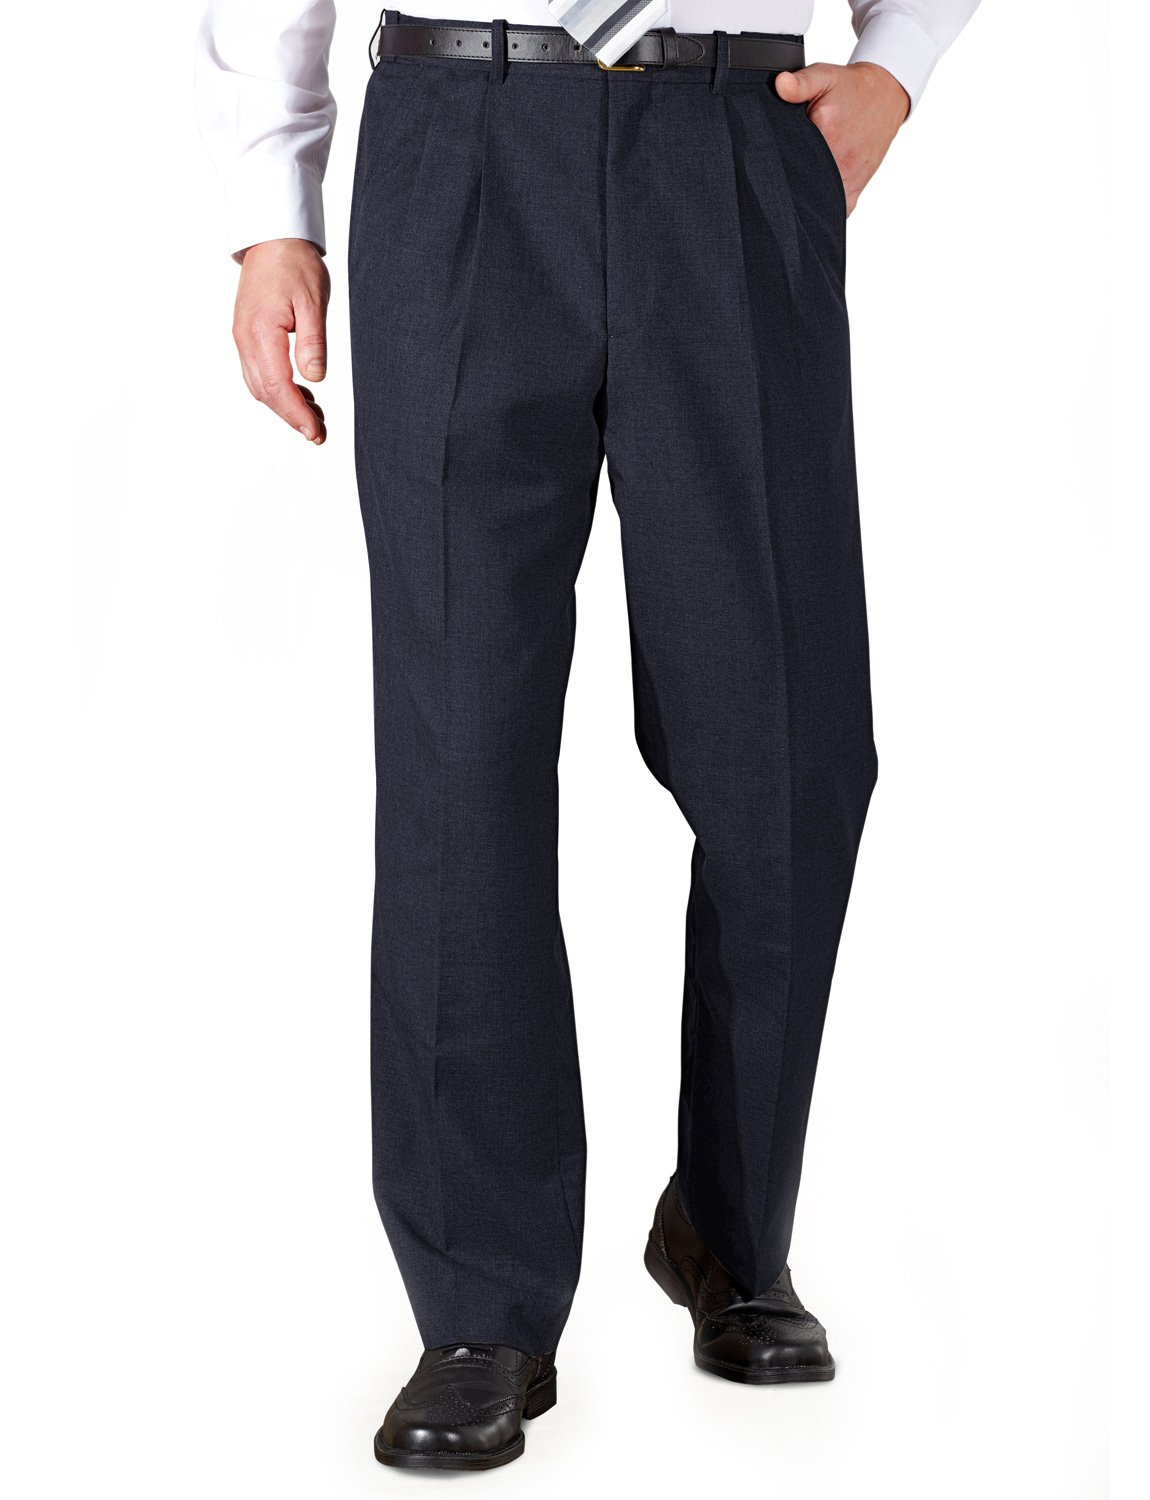 Chums Mens Poly Viscose Pleated Trouser With Extra Stretch Waistband